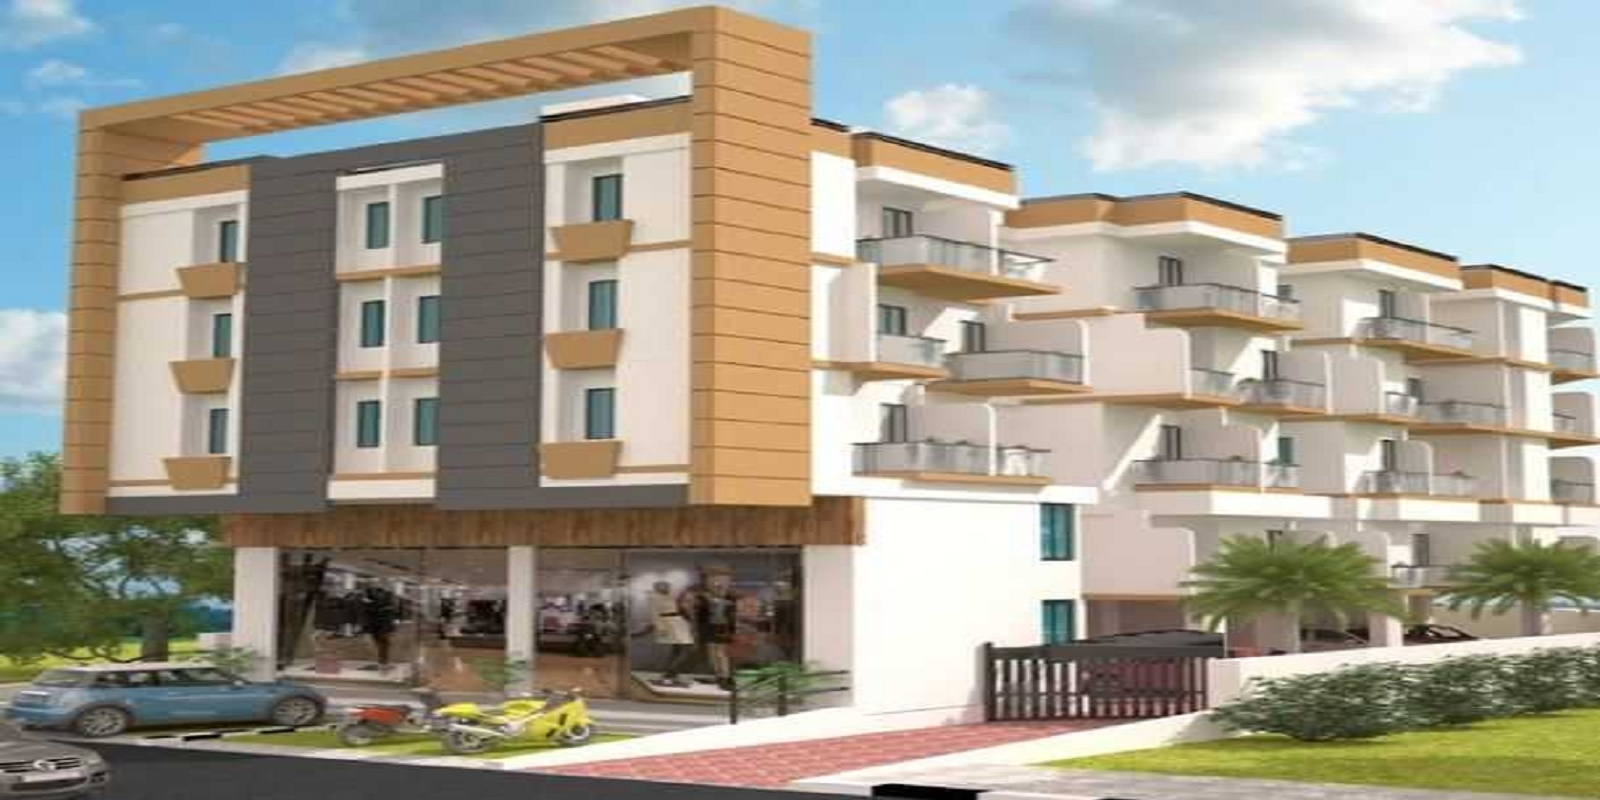 varma fortune house project project large image1